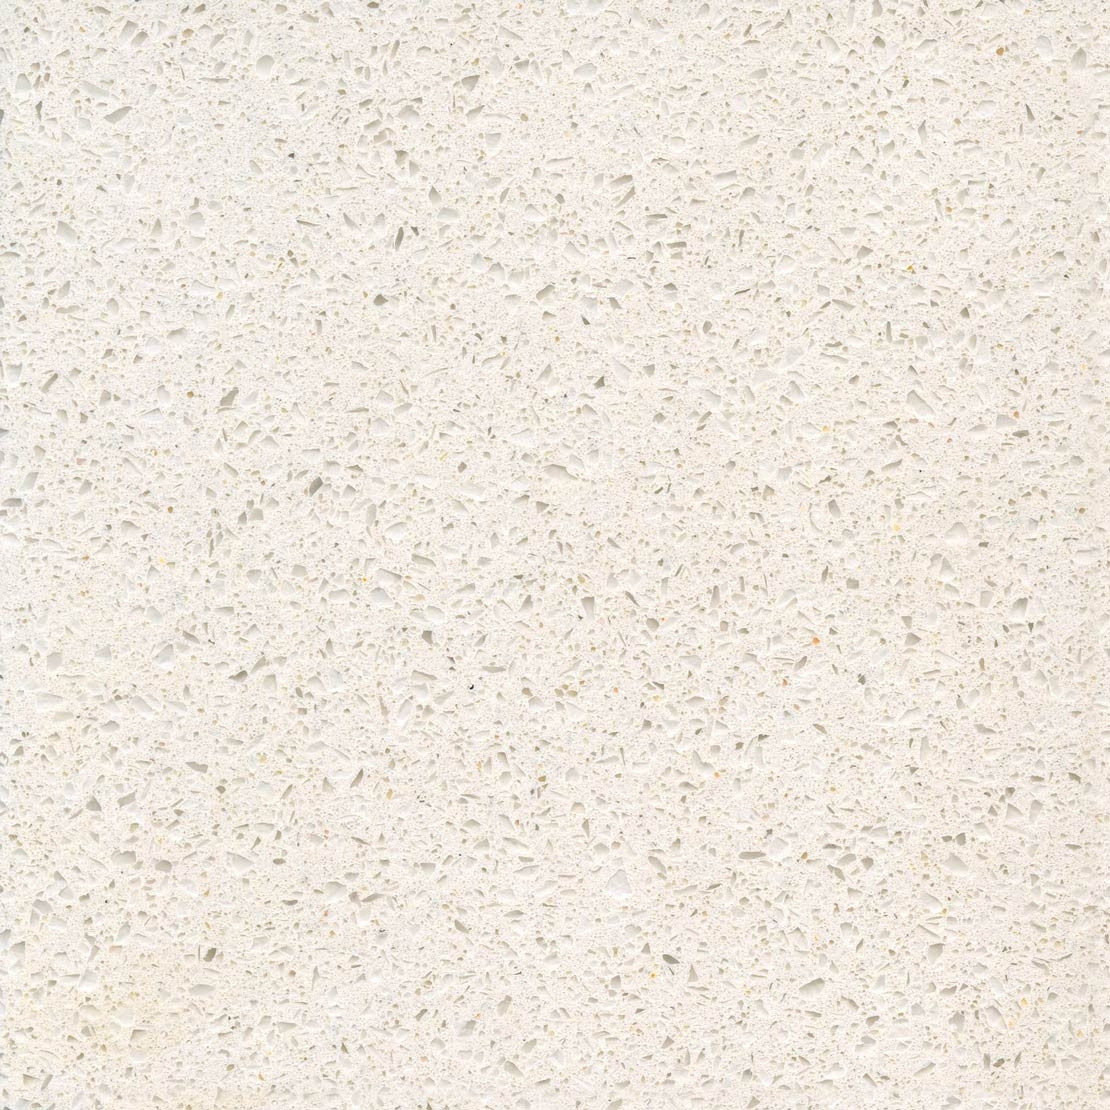 Blad Silestone Blanco Maple 14